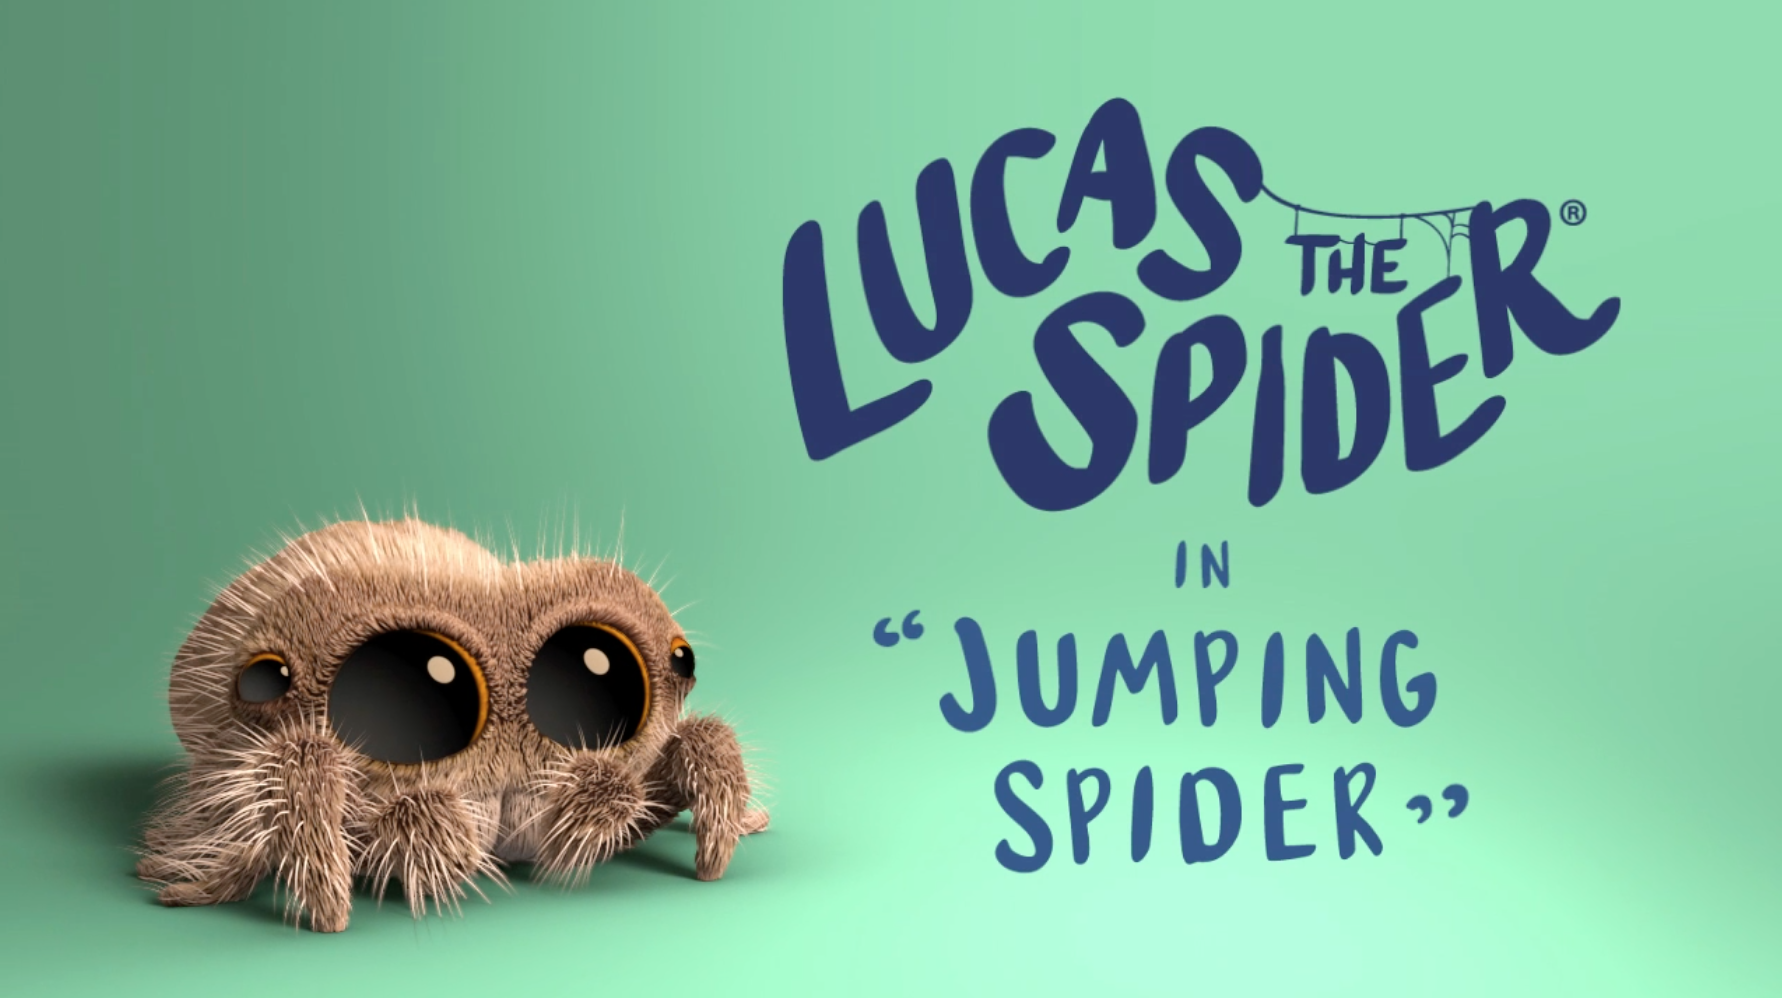 Lucas the Spider - Jumping Spider